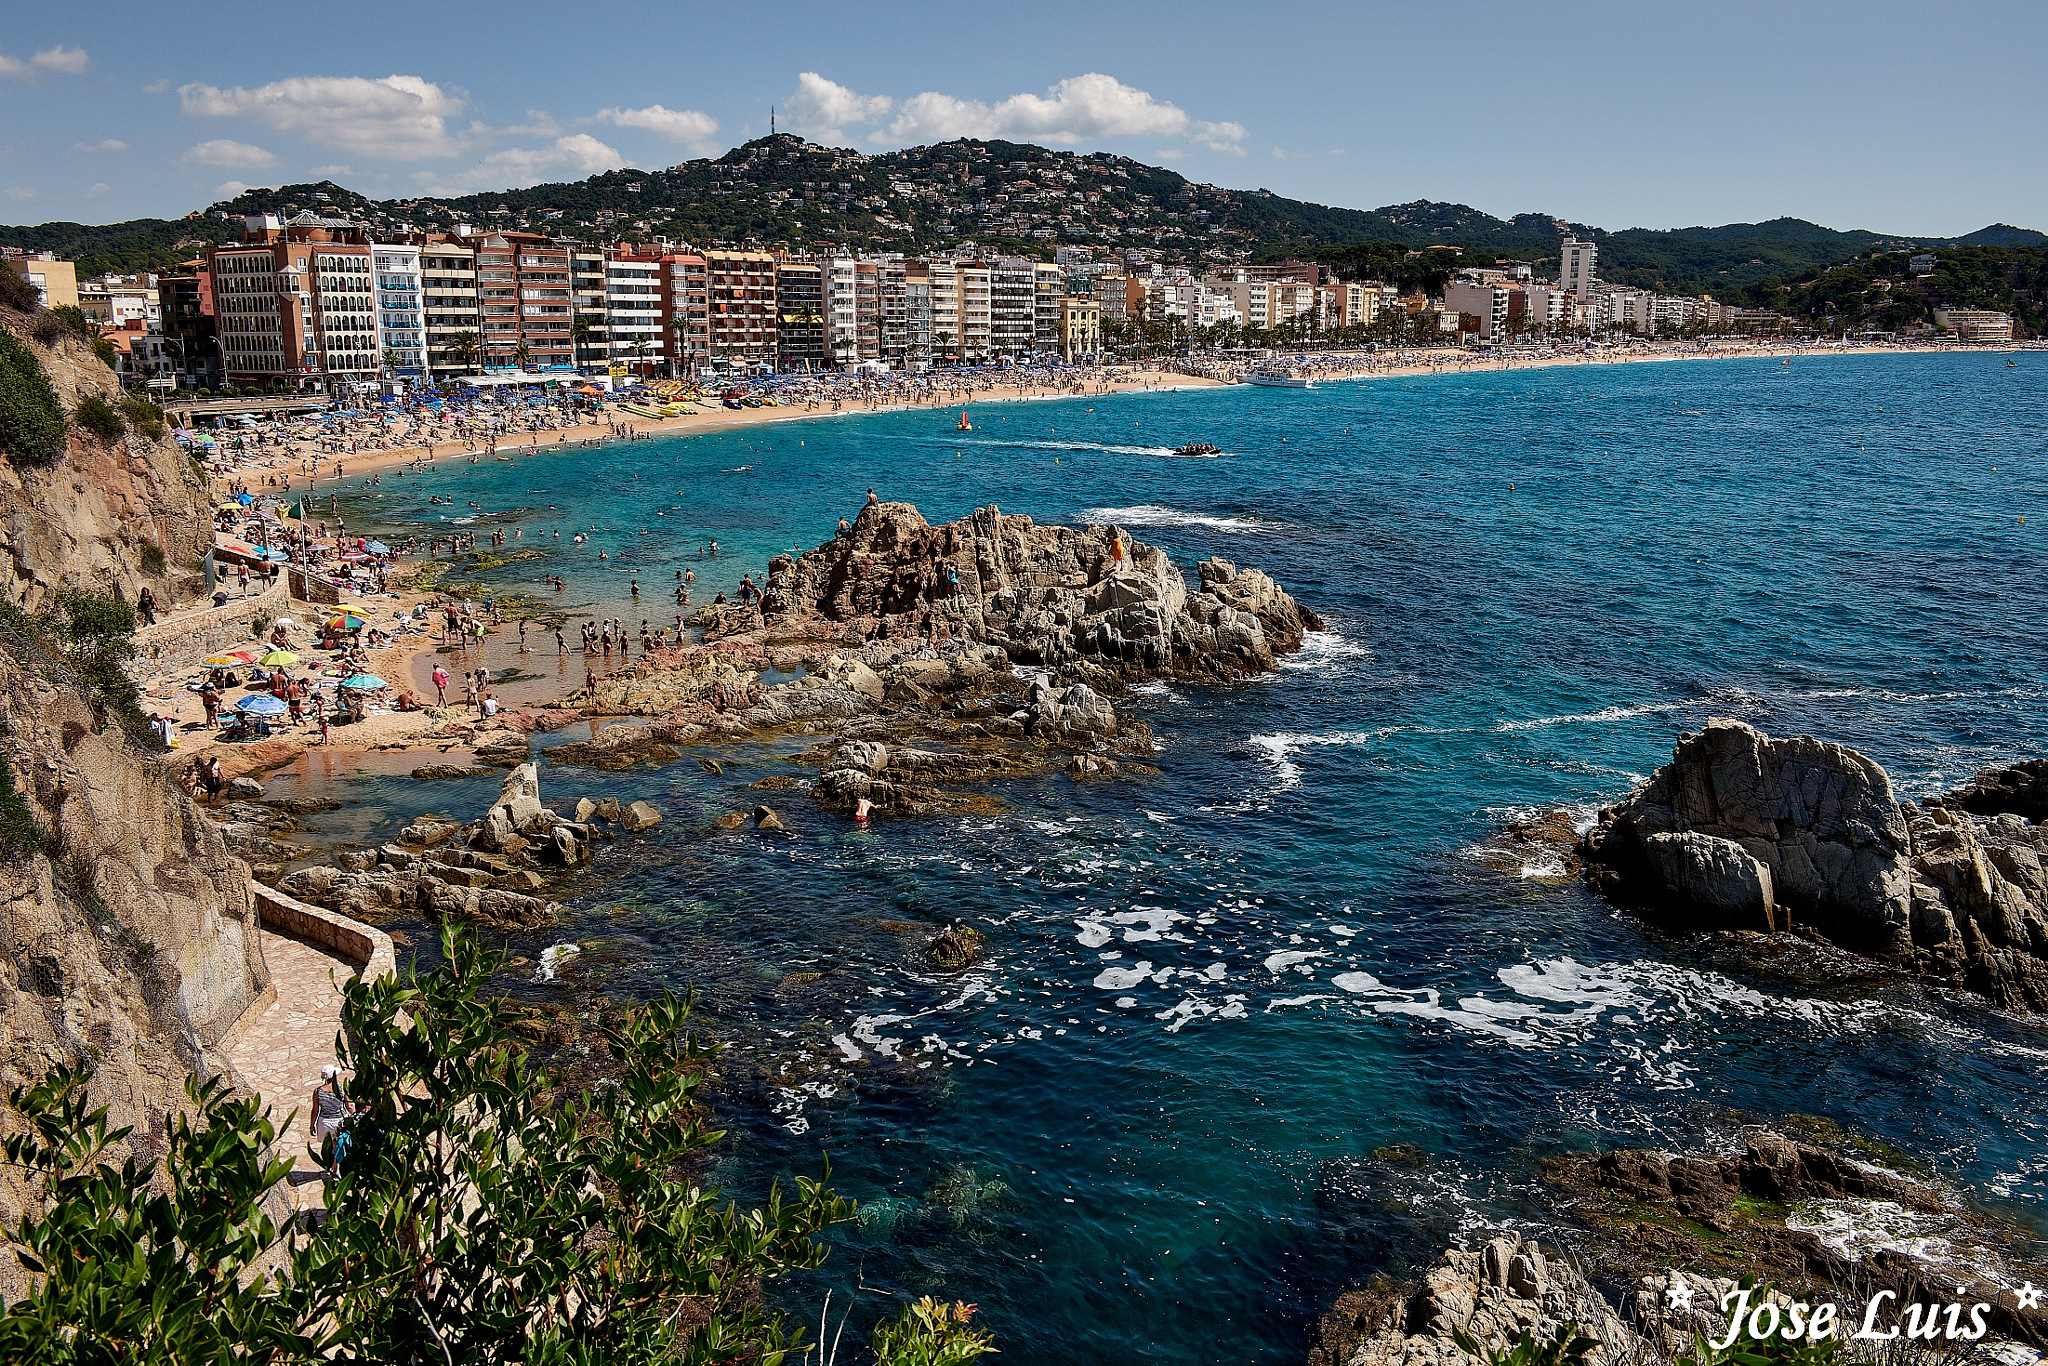 LLoret del Mar by jose.downlord